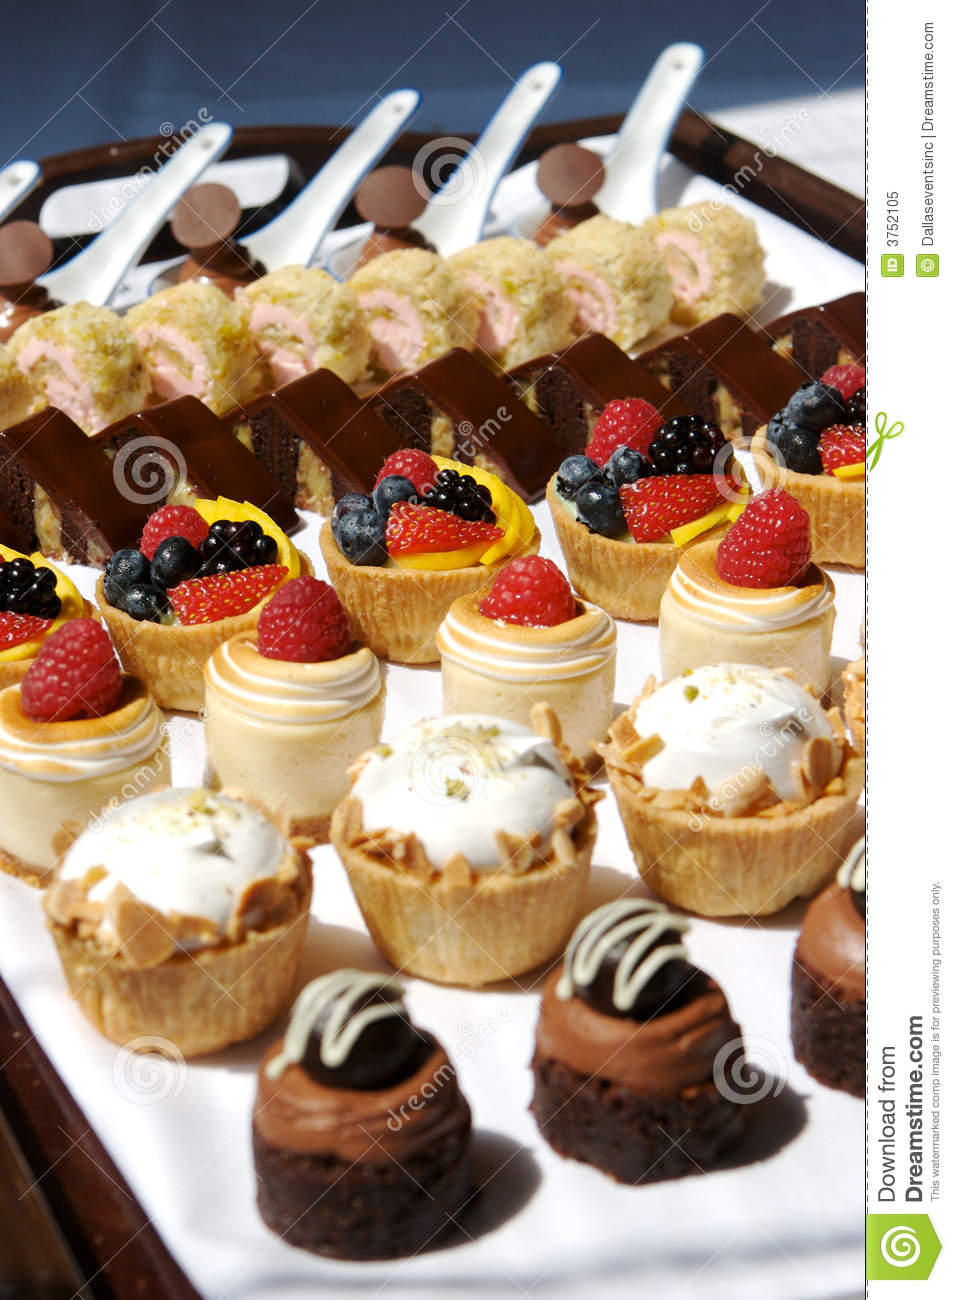 Dessert Tray Assortment Royalty Free Stock Photo Image